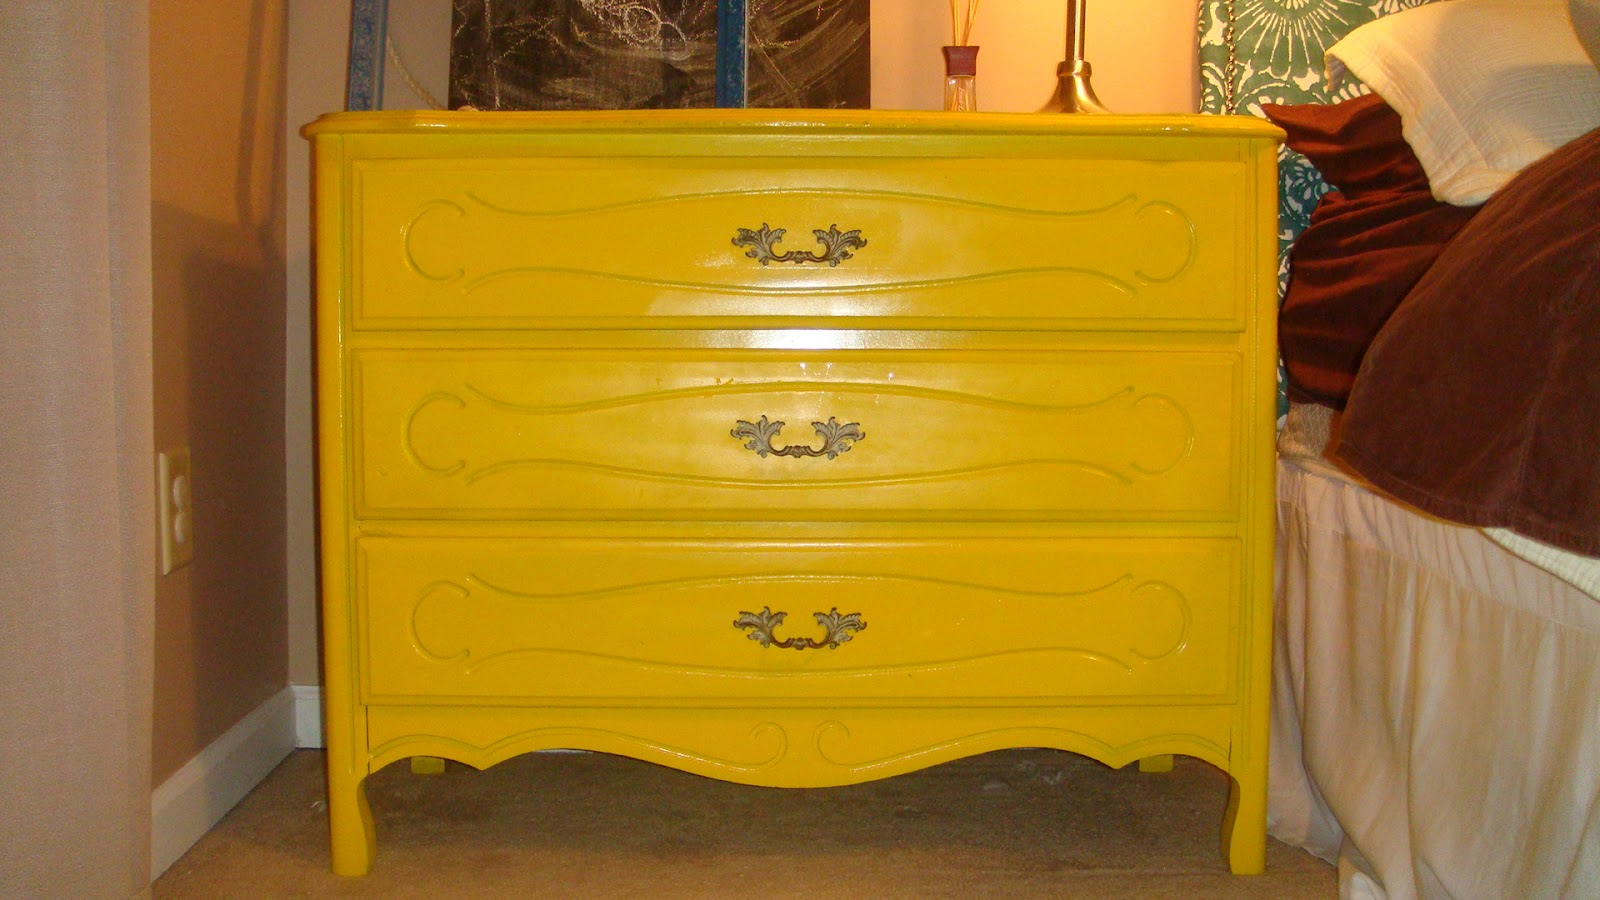 Ikea Yellow Chest Of Drawers ~ She is pulling double duty As chest of drawers and night stand Some